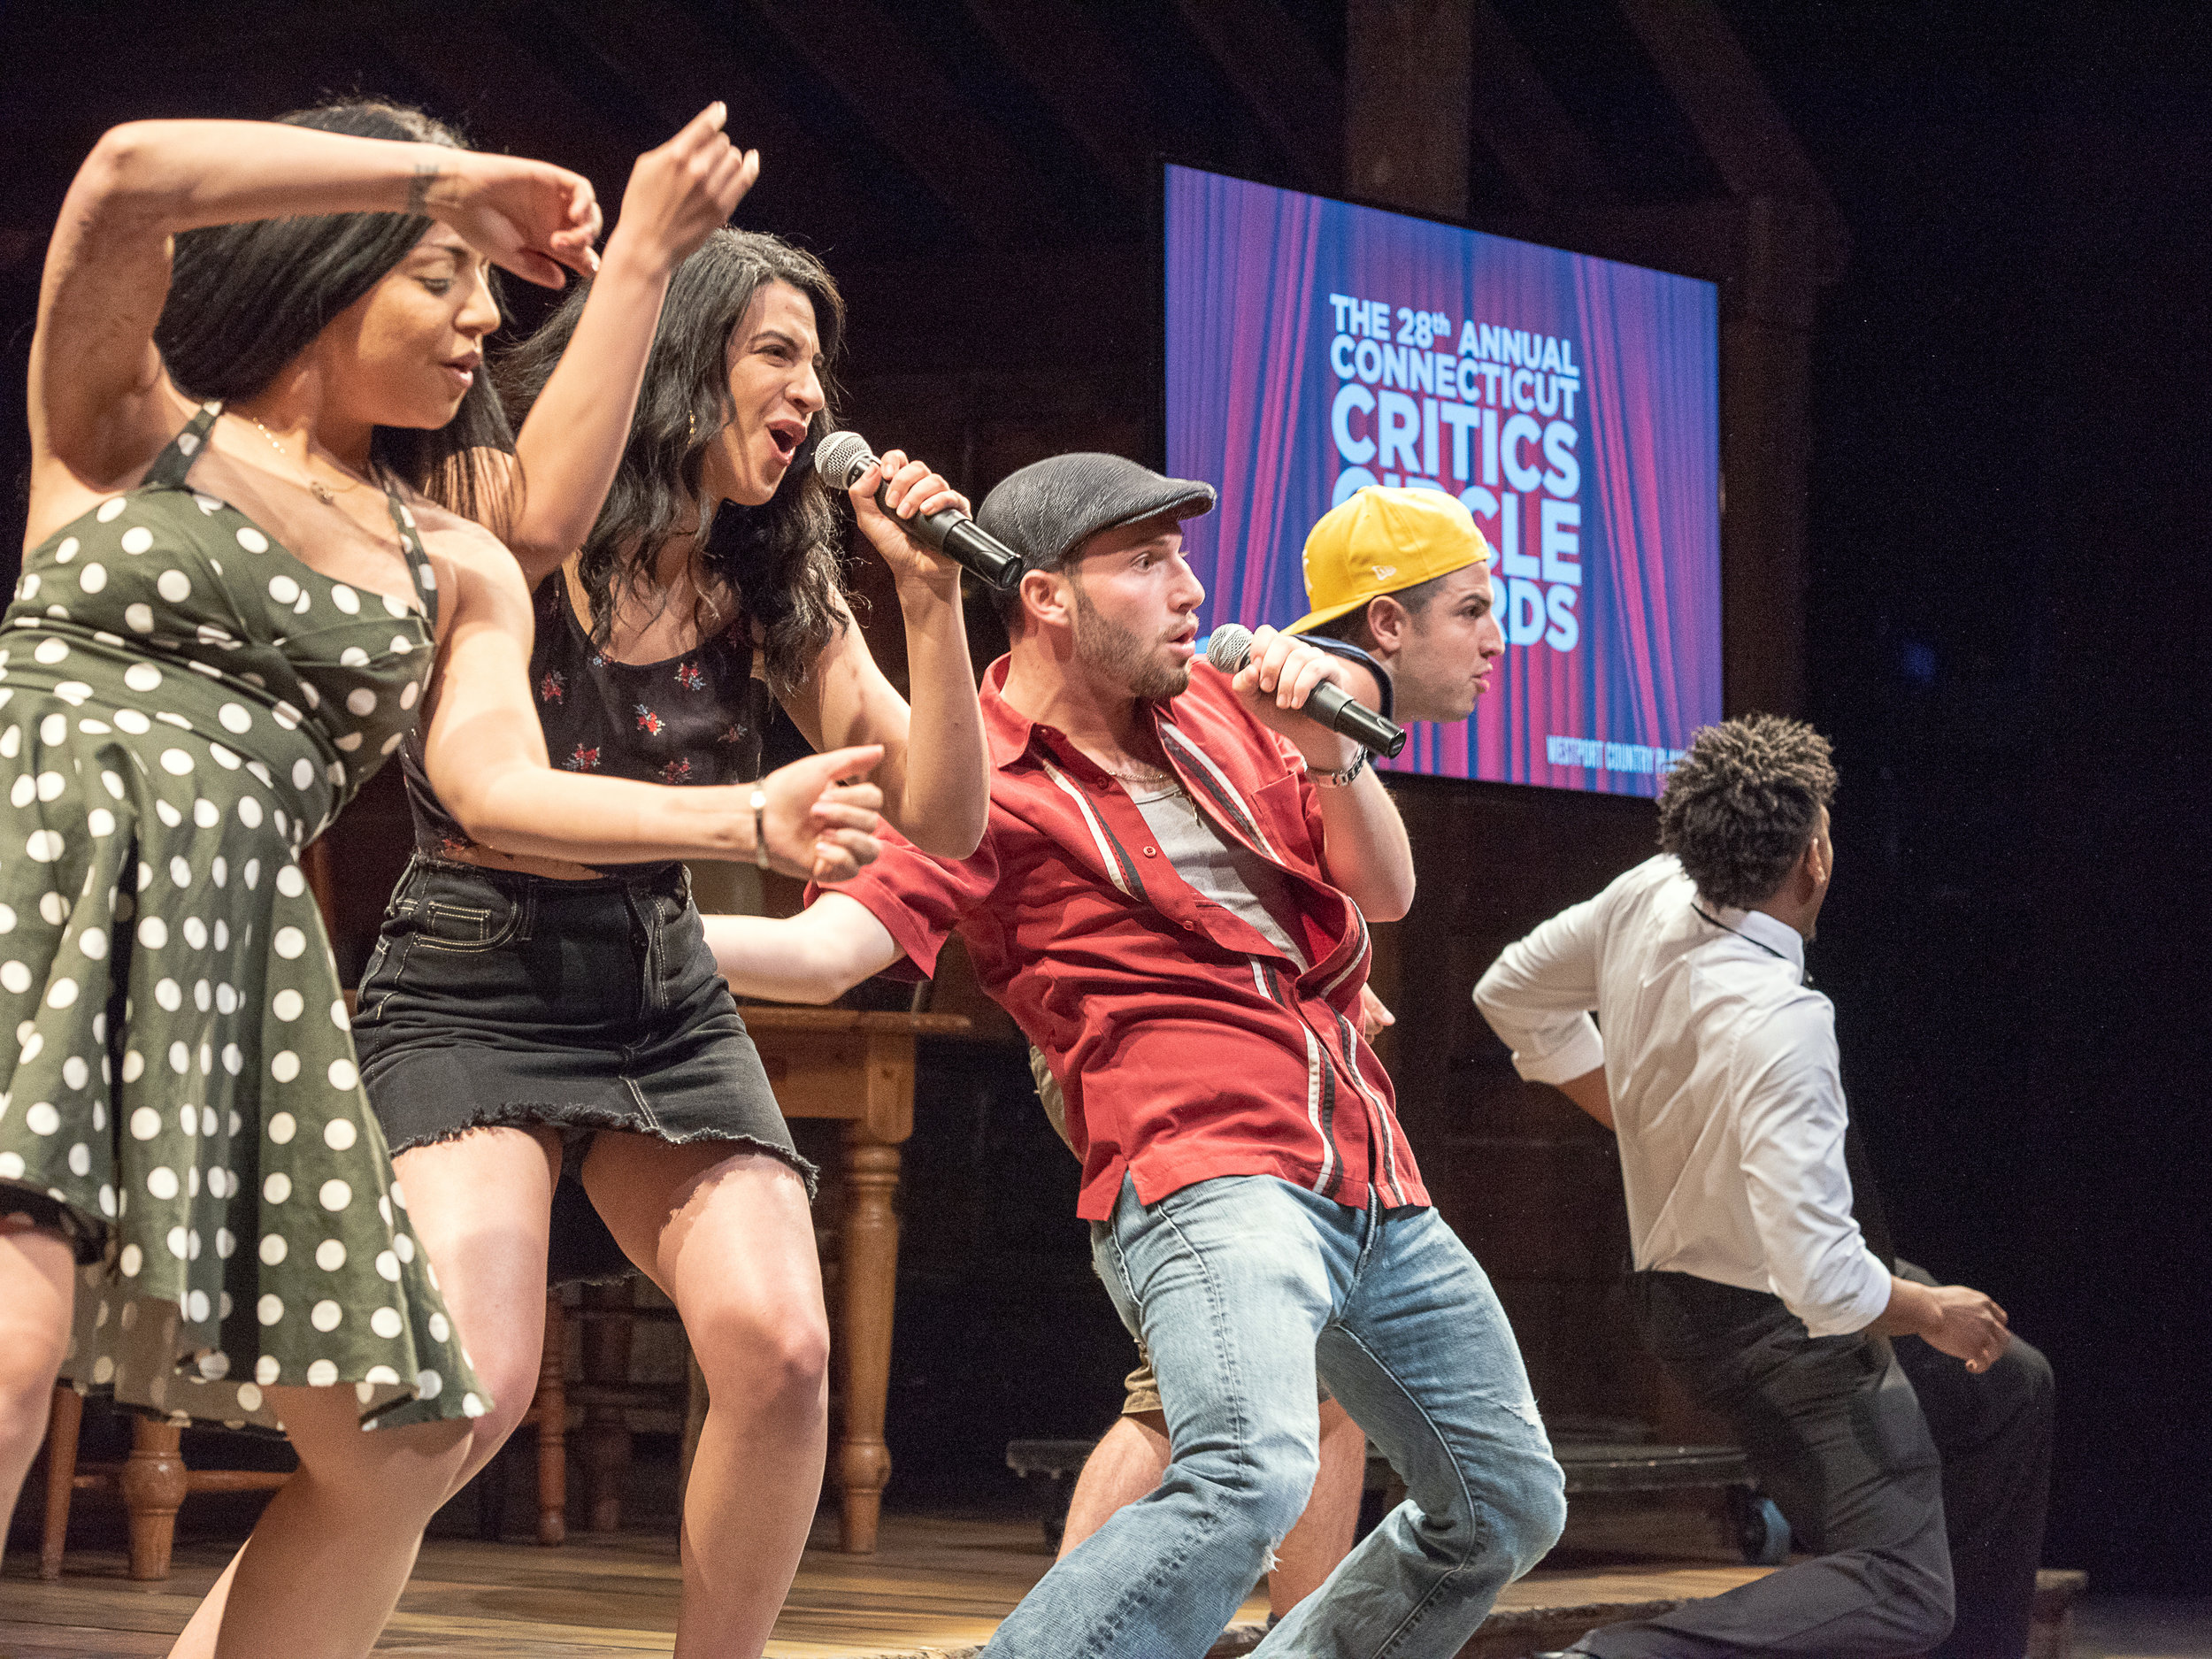 ccc18 in the heights2.jpg